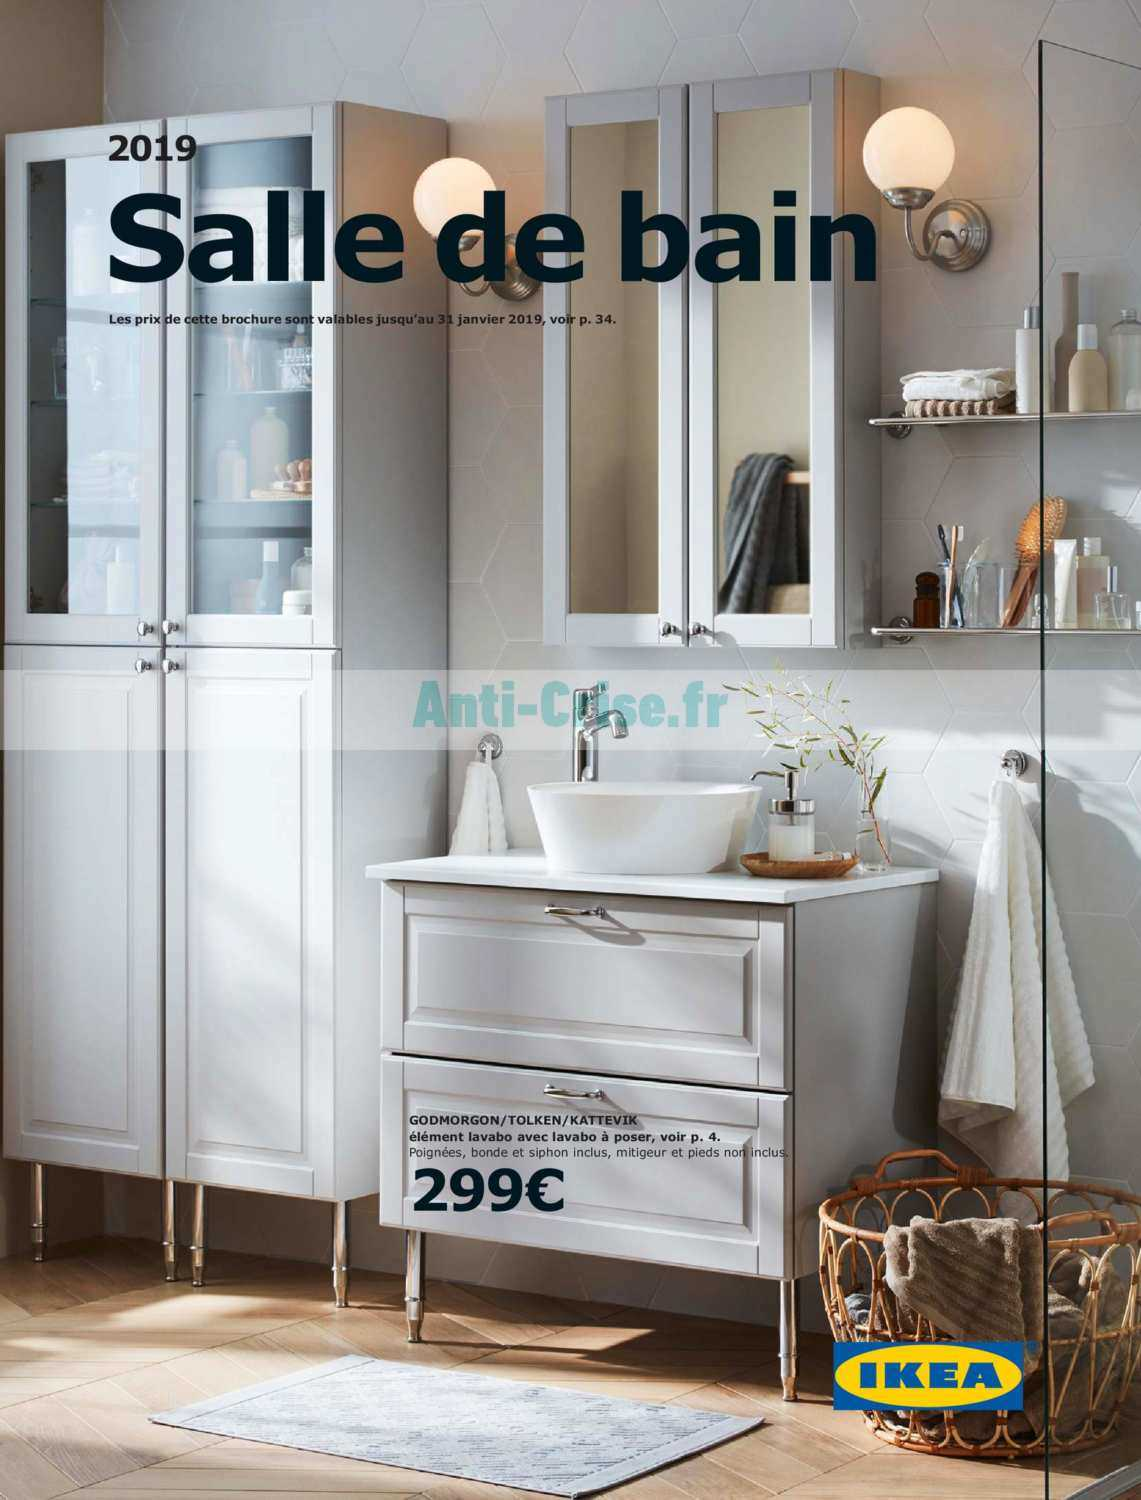 Catalogue Ikea Mulhouse Catalogue Ikea Du 16 Octobre 2018 Au 31 Janvier 2019 Catalogues